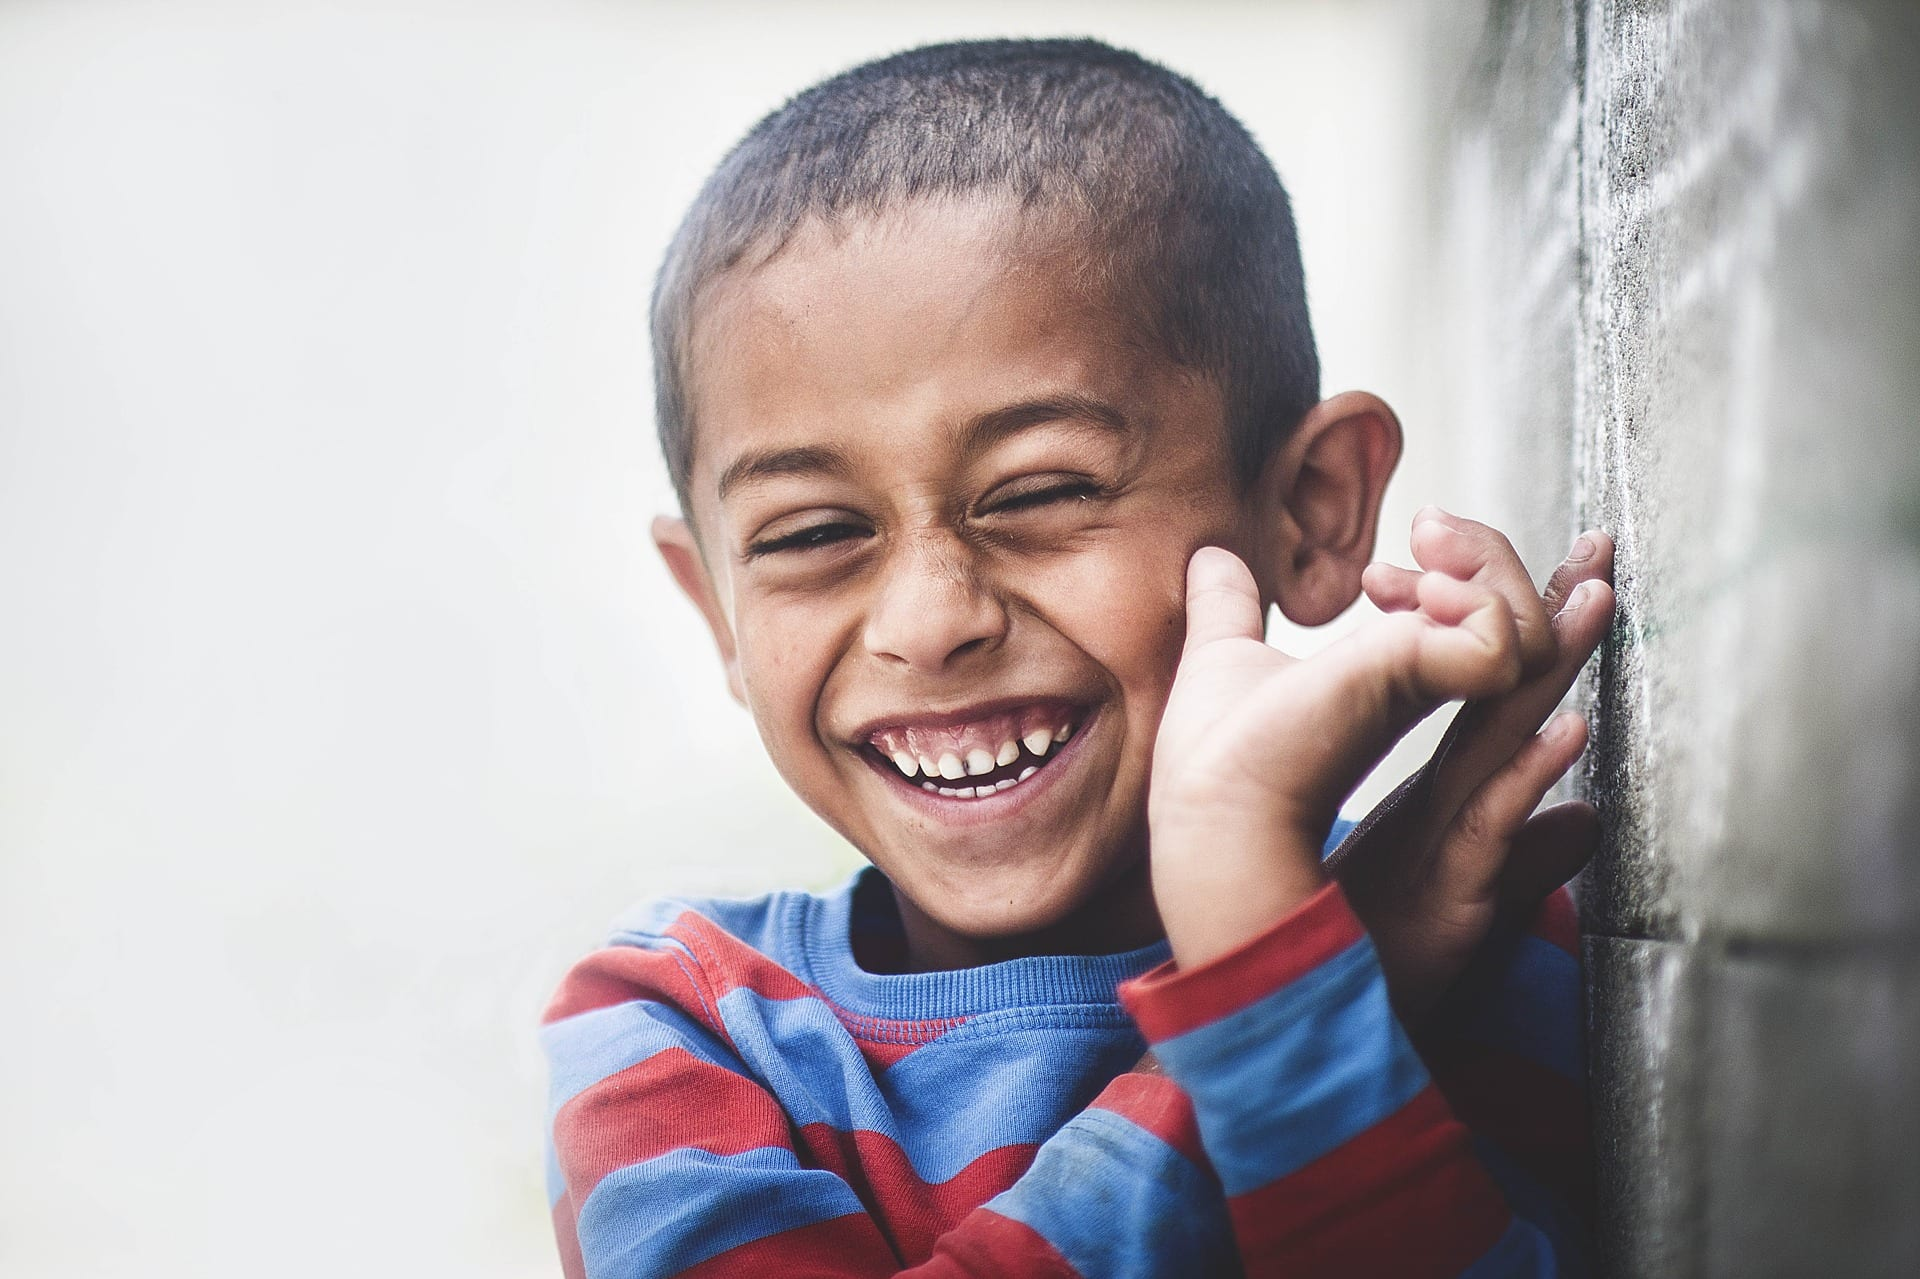 A young boy grinning widely.